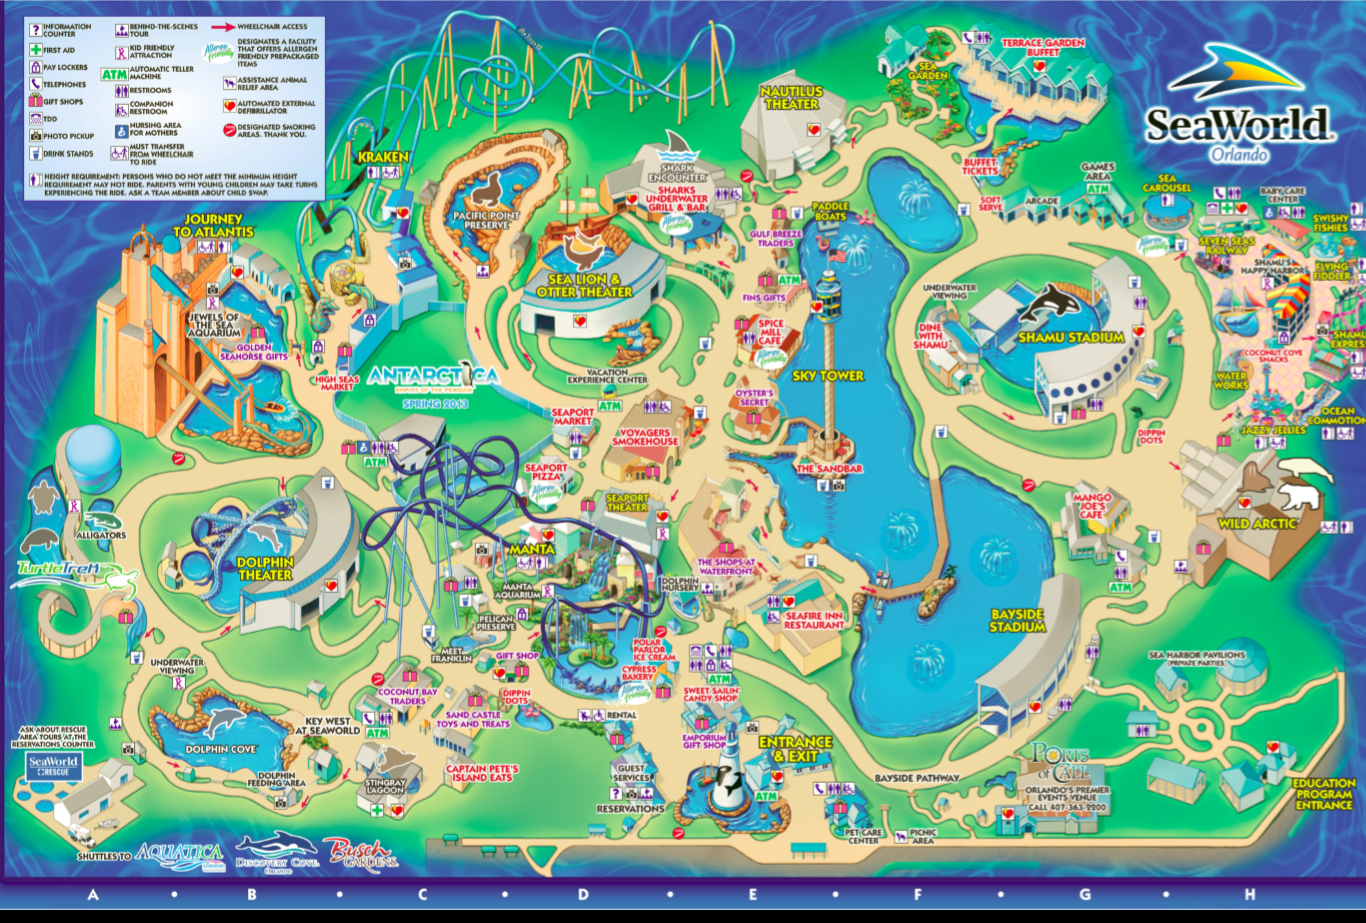 schlitterbahn galveston map with Mapas Parques De Orlando on Galveston Texas Beaches UhPhxh8 7CGa03B4tsSoXqE0fkZdaeMnP AG4Ohsv8WUw in addition New kentucky kingdom park map for 2014 also Kalahari Wisconsin Dells in addition 225325478 additionally Top 5 New Braunfels Schlitterbahn Rides.